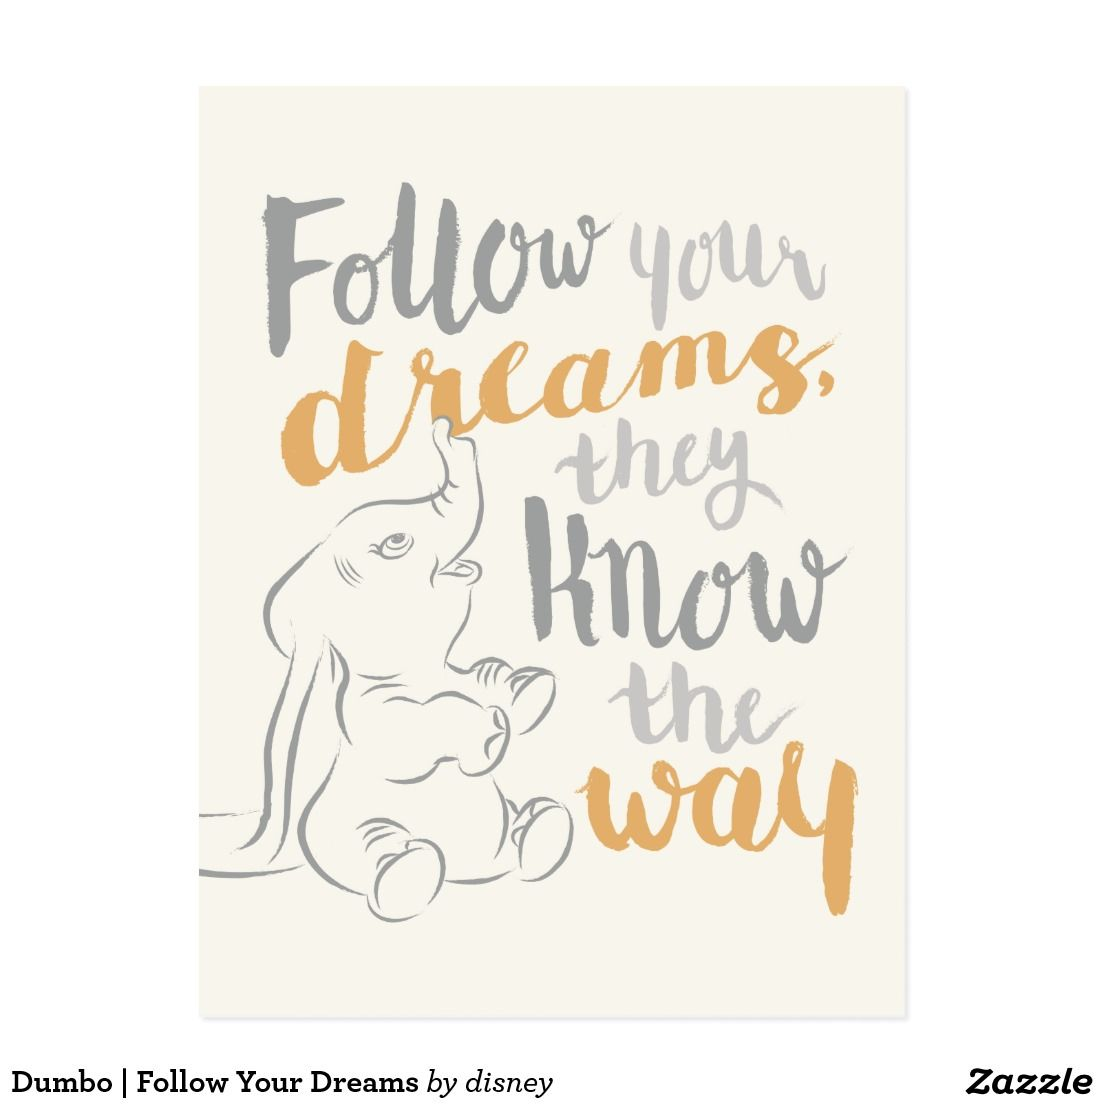 10個英文書法刺青貼 Quotes Words Tattoo Sticker 2 0 三送一: Follow Your Dreams Postcard …